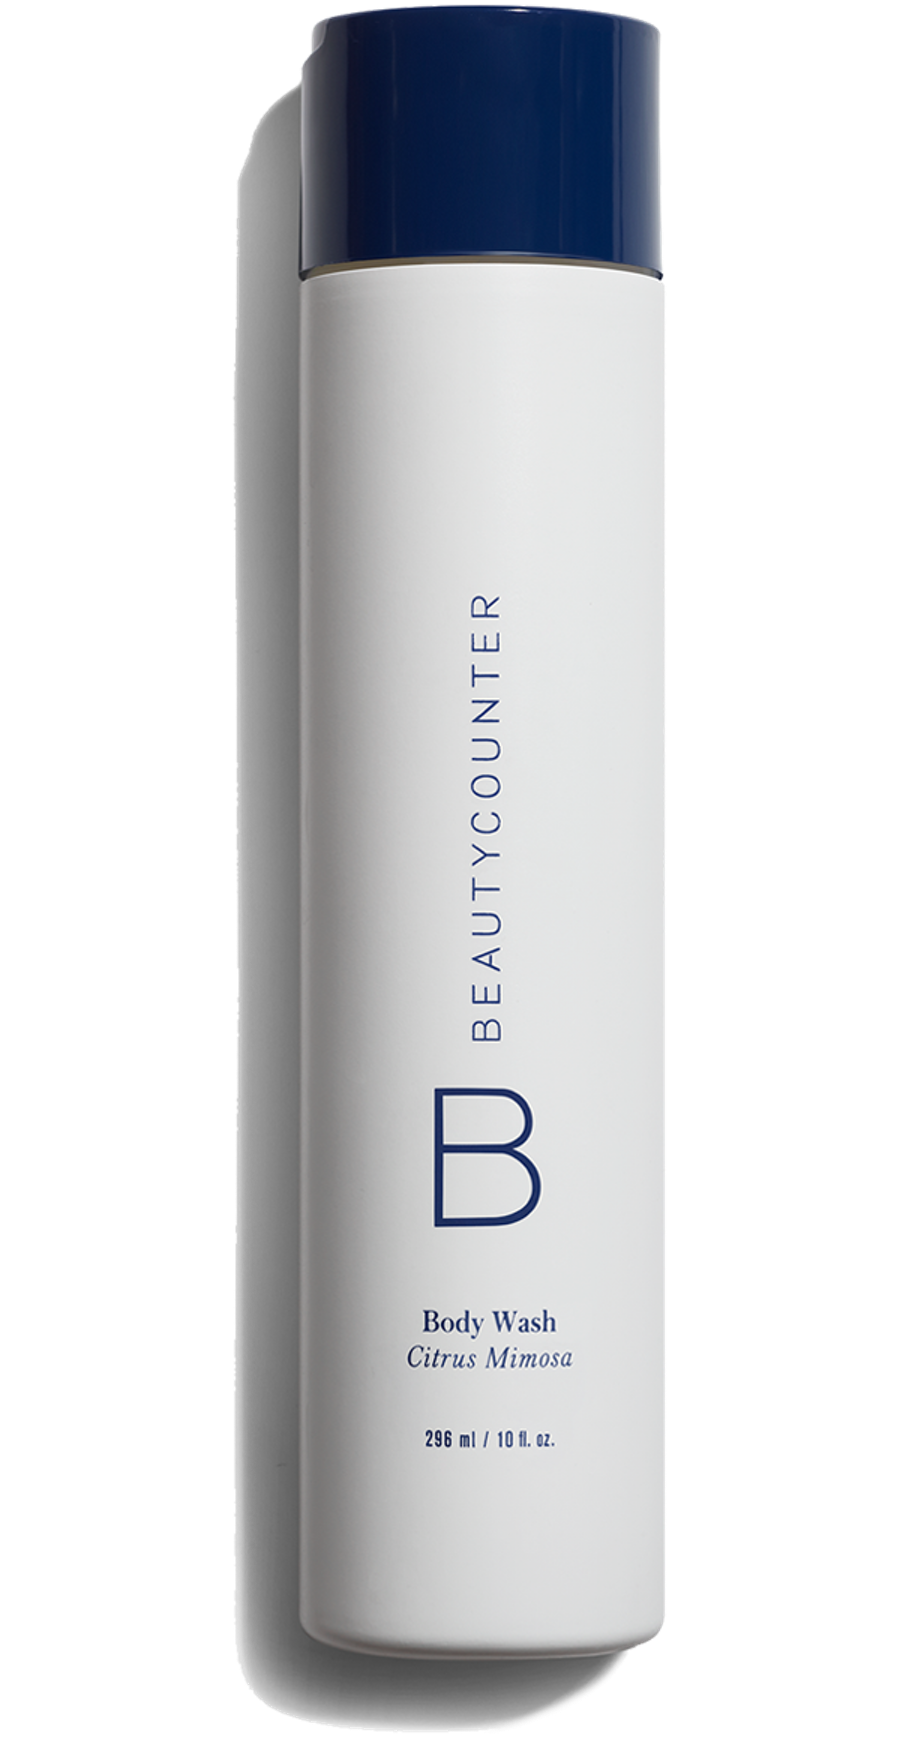 beautycounter-body wash in citrus mimosa.png